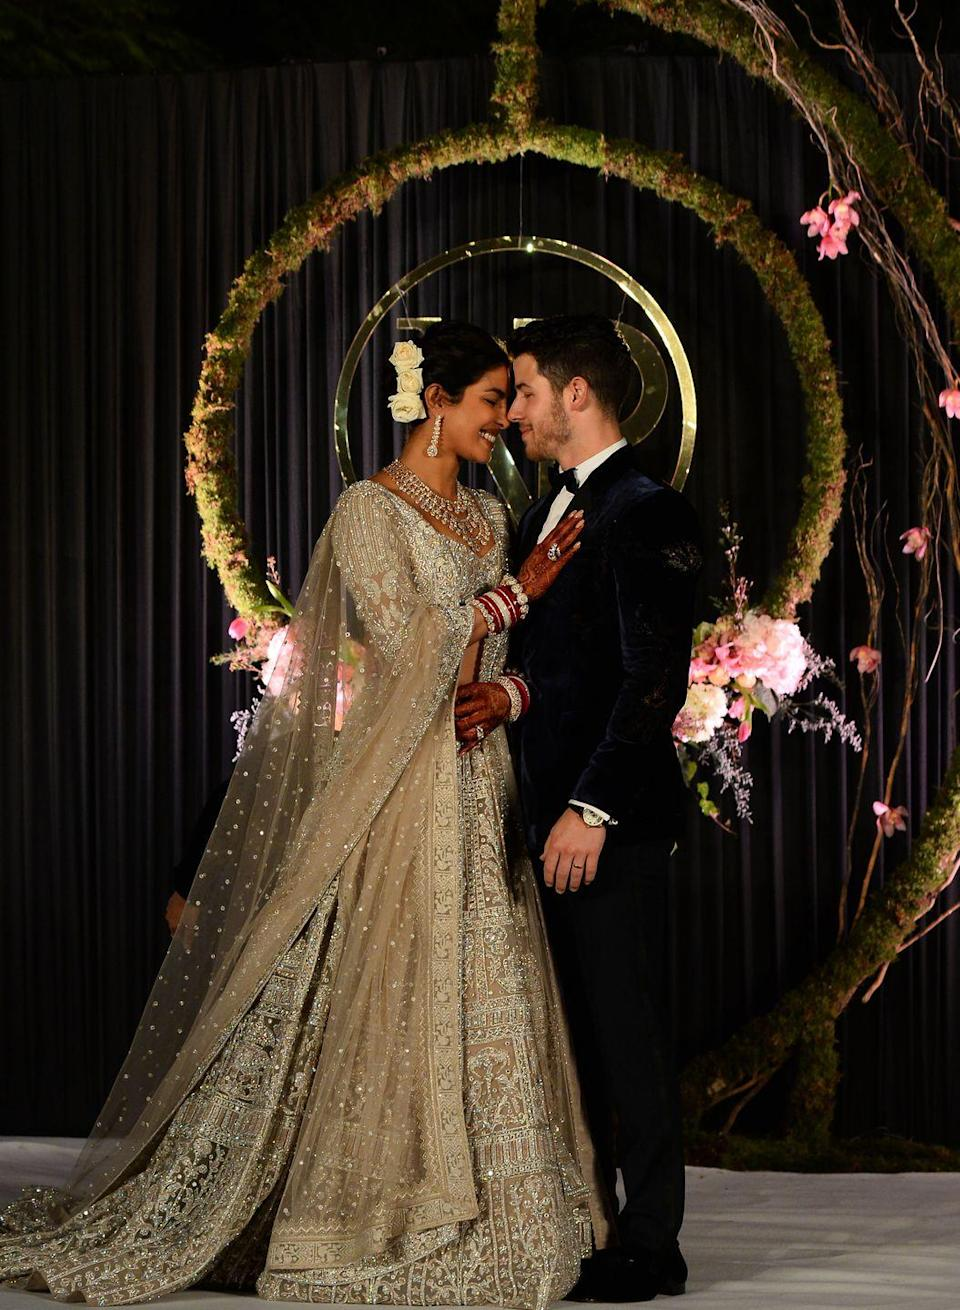 "<p>As part of their <a href=""https://www.elle.com/uk/life-and-culture/a25452517/priyanka-chopra-has-revealed-her-and-nick-jonas-full-family-wedding-portraits/"" rel=""nofollow noopener"" target=""_blank"" data-ylk=""slk:wedding celebrations"" class=""link rapid-noclick-resp"">wedding celebrations</a>, the couple host a reception and concert in India which event welcomed the country's Prime Minister Narendra Modi. </p>"